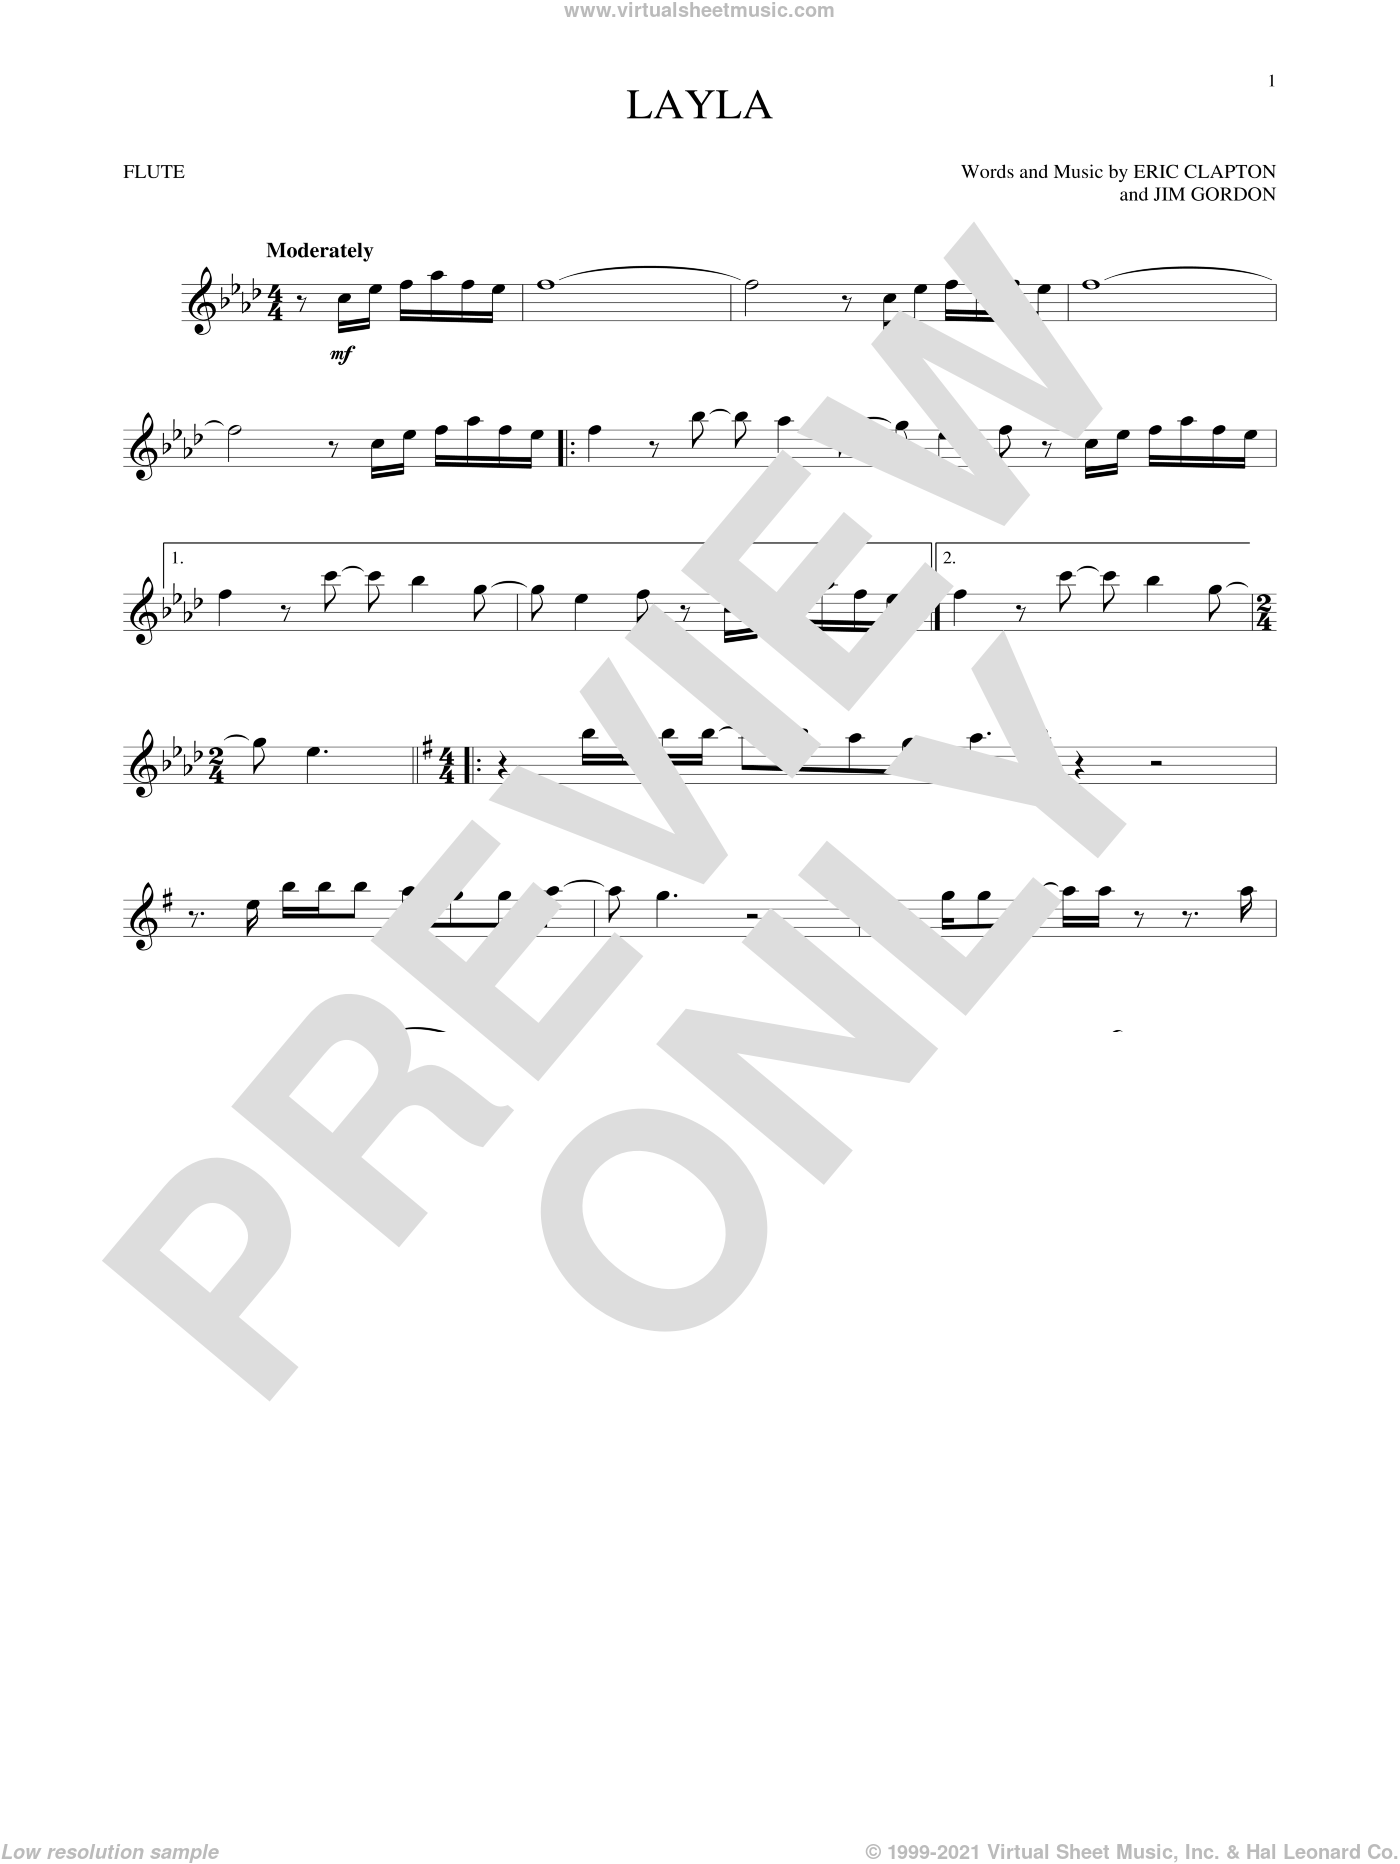 Layla sheet music for flute solo by Eric Clapton, Derek And The Dominos and Jim Gordon, intermediate skill level